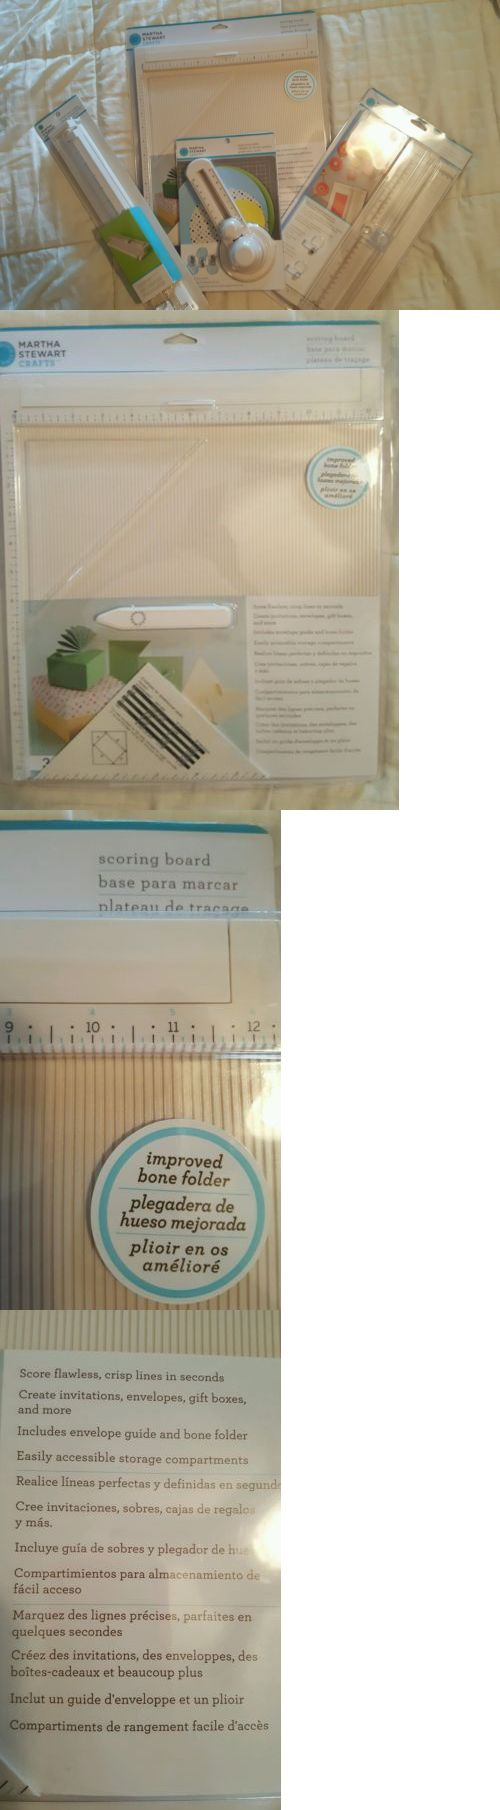 Cutters and Trimmers 183174: Brand New Martha Stewart Paper Trimmer Circle Cutter Scoring Board Set Of Four! -> BUY IT NOW ONLY: $59.99 on eBay!